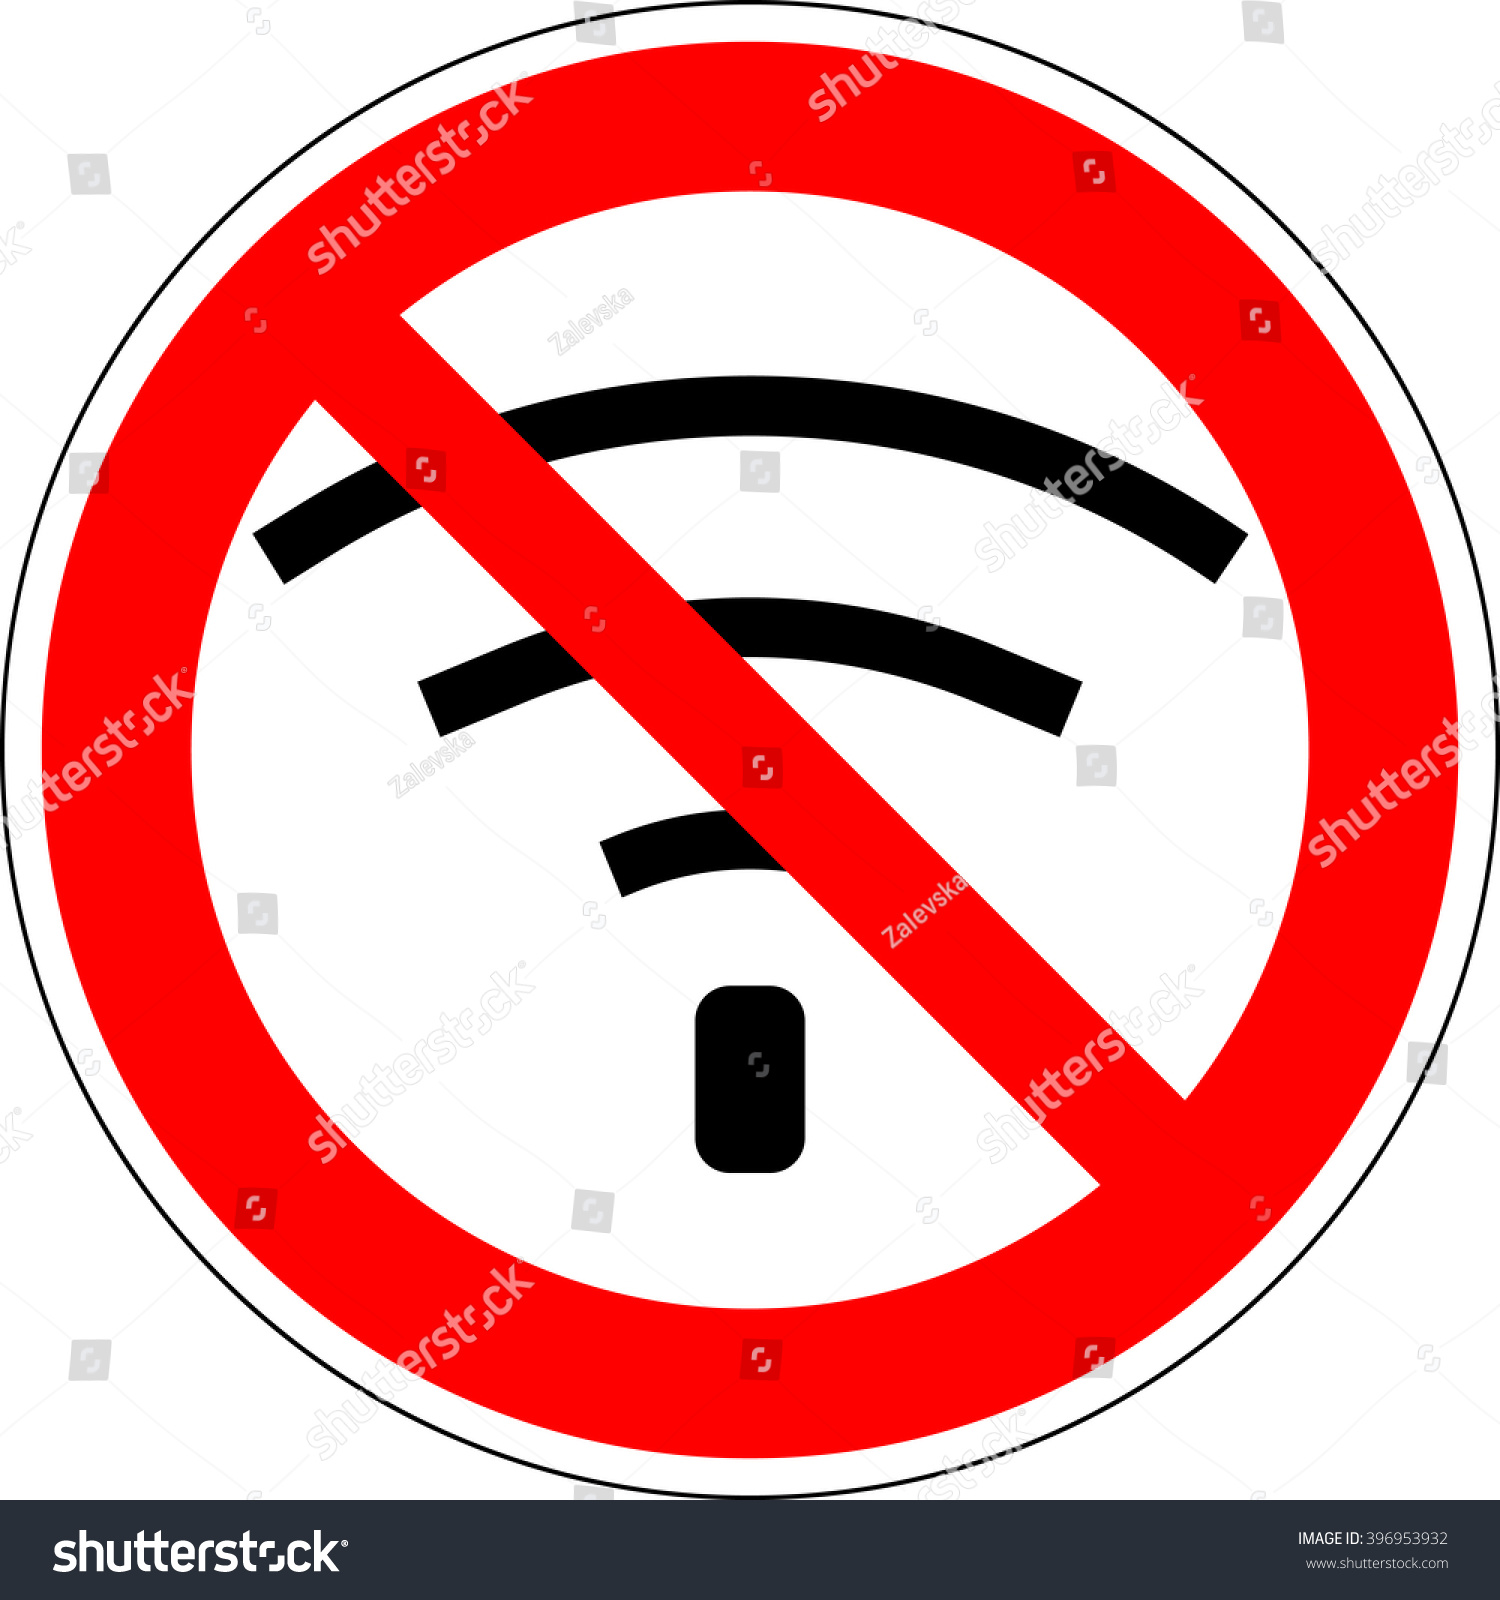 tails how to connect to wifi